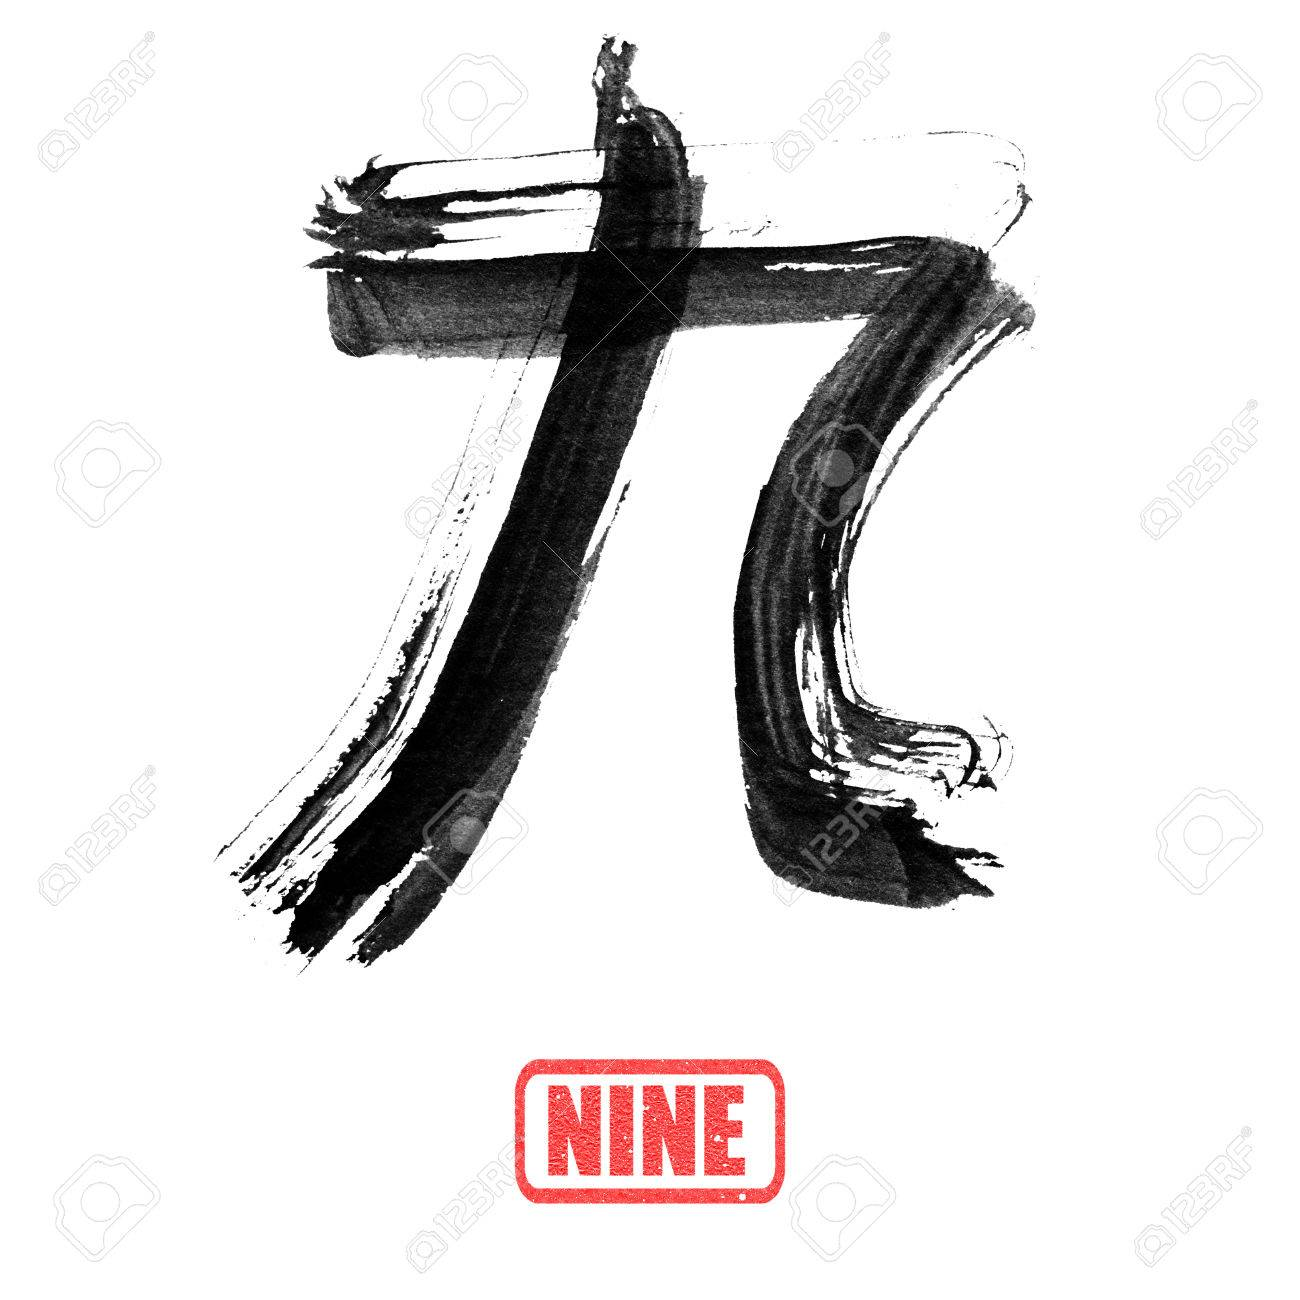 Image result for nine in chinese